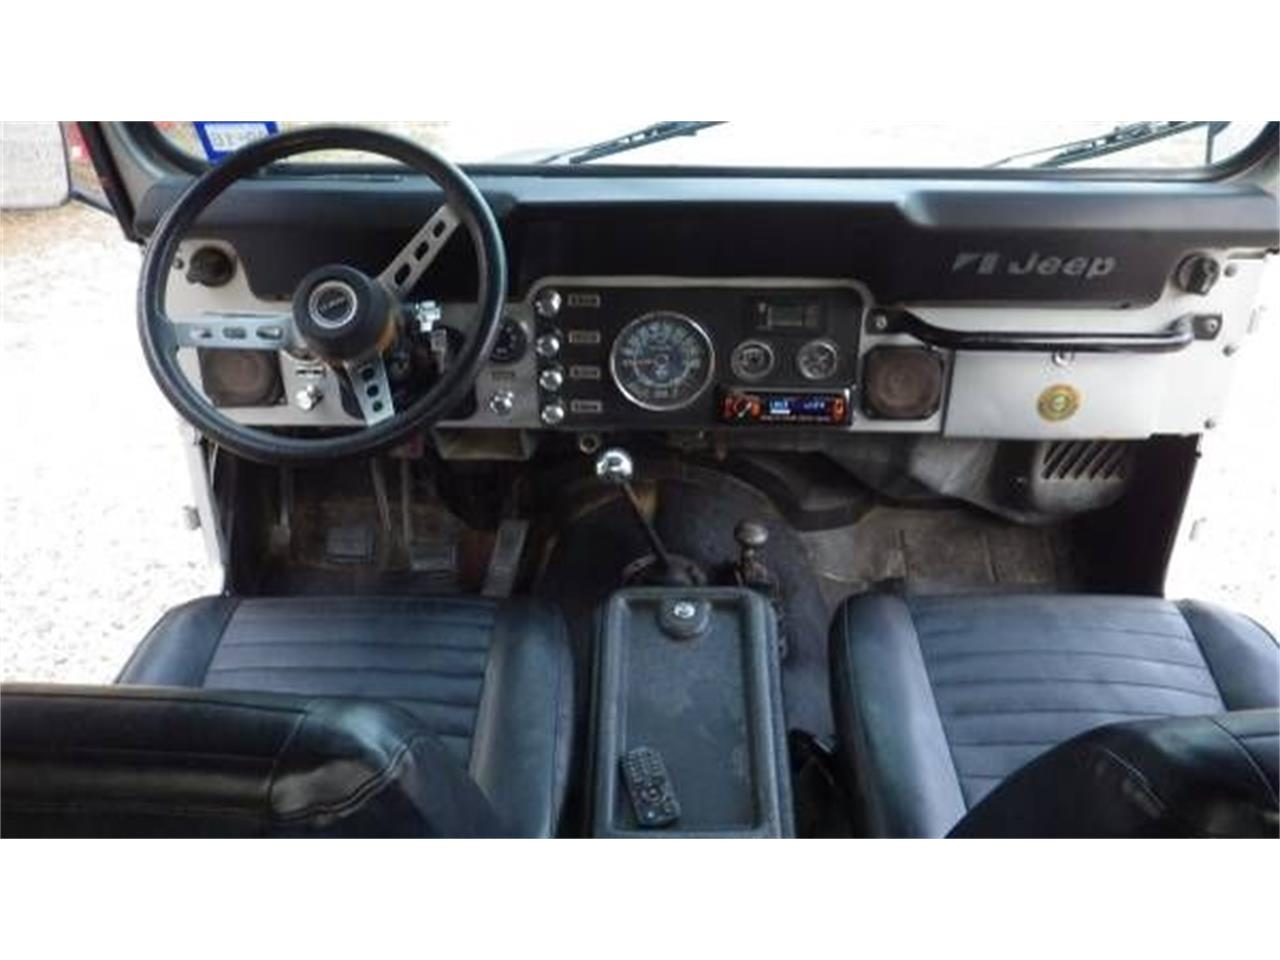 Large Picture of '79 Jeep CJ5 located in Cadillac Michigan - $21,795.00 - OX3V